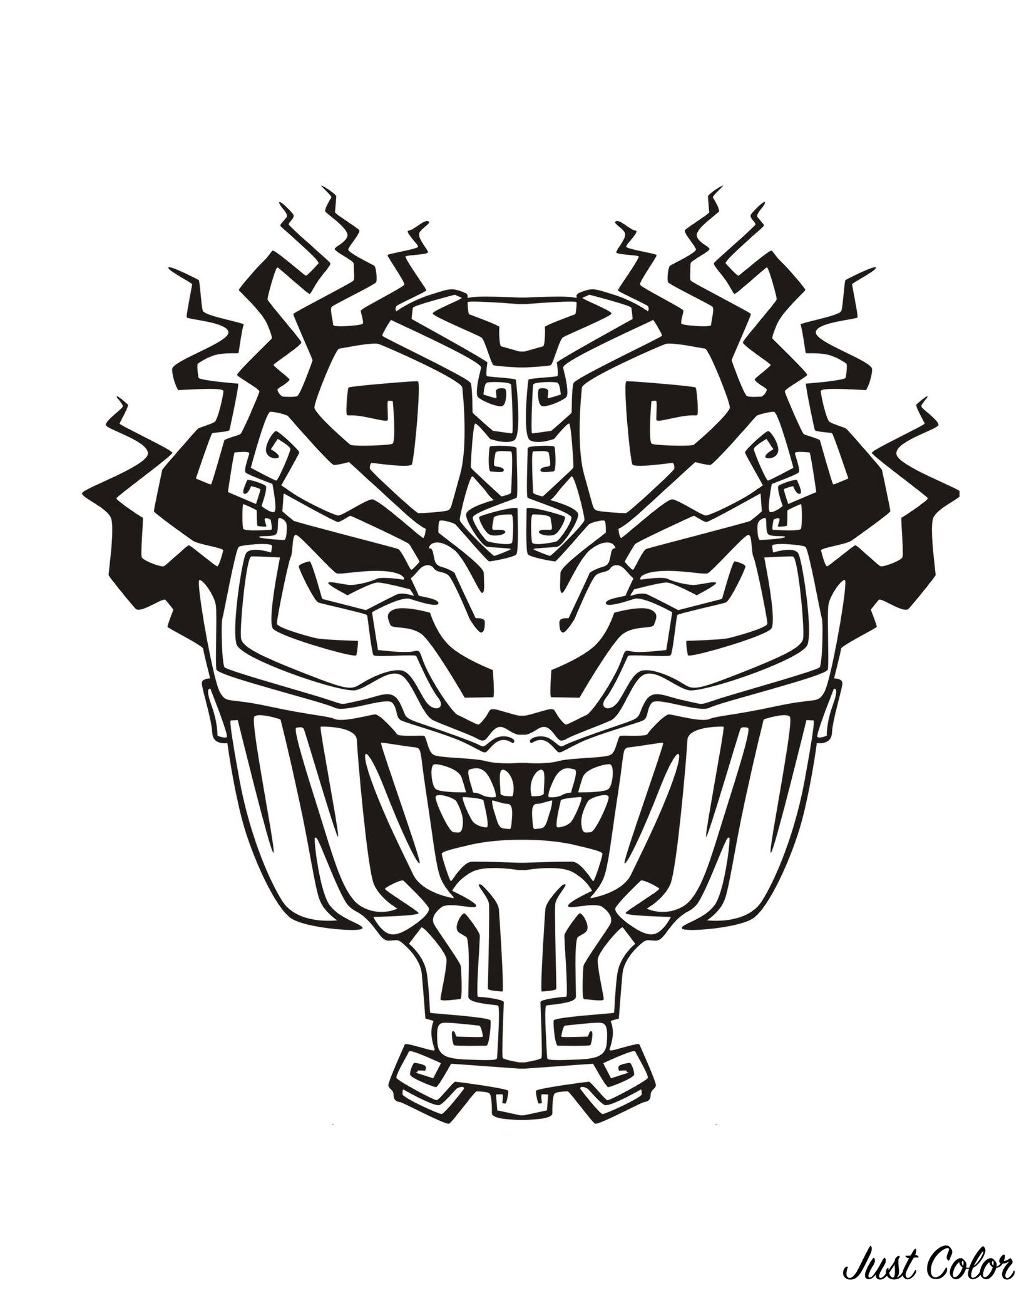 Mask inspired by Aztecs, Mayans and Incas - 4